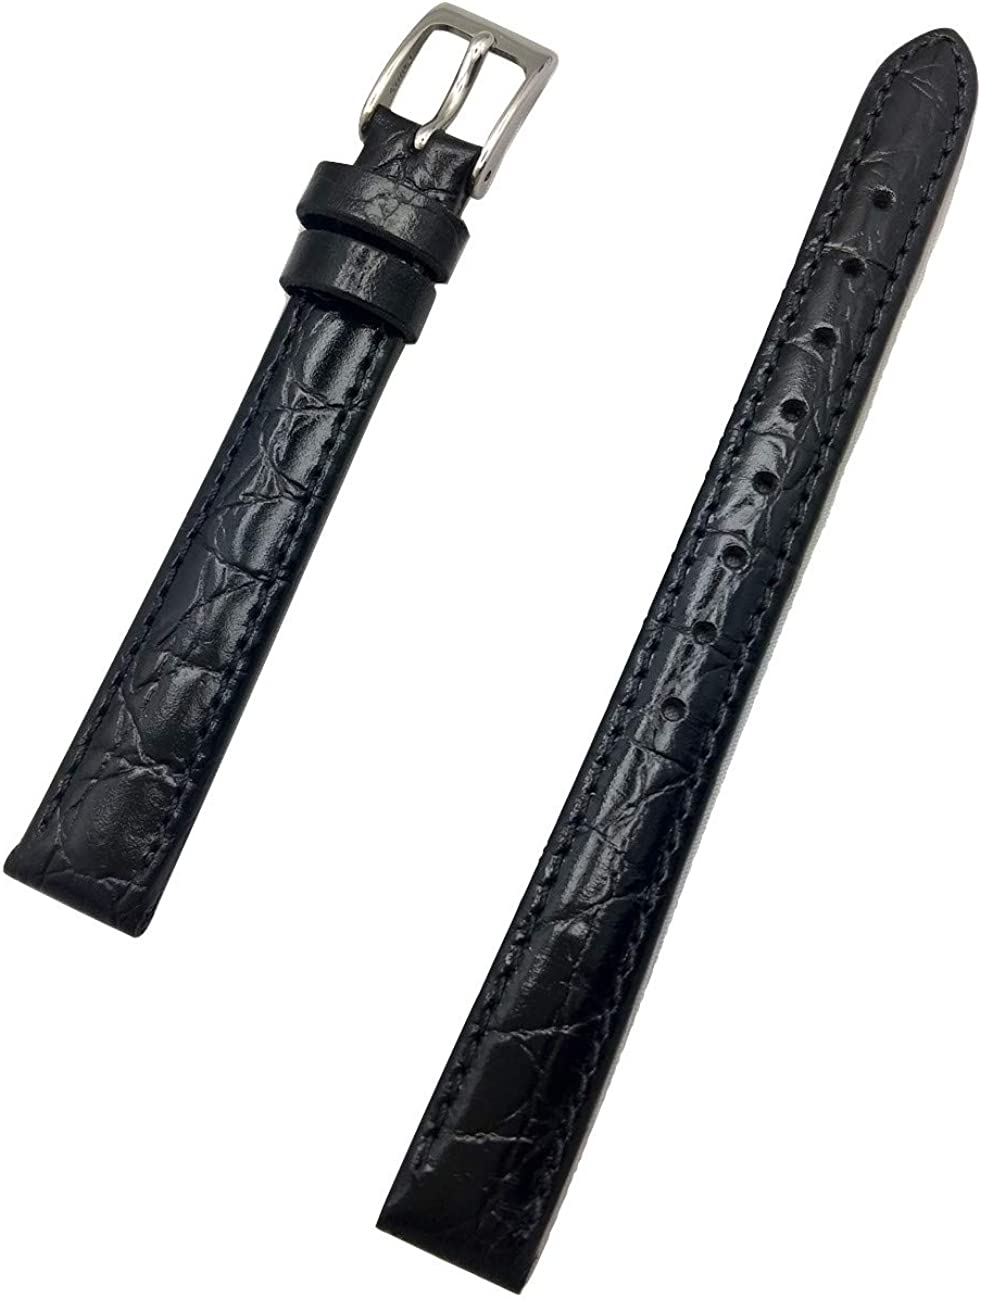 12mm Long, Black Genuine Leather Watch Band | Round Alligator Crocodile Grain, Lightly Padded Replacement Wrist Strap that brings New Life to Any Watch (Womens Long Length)